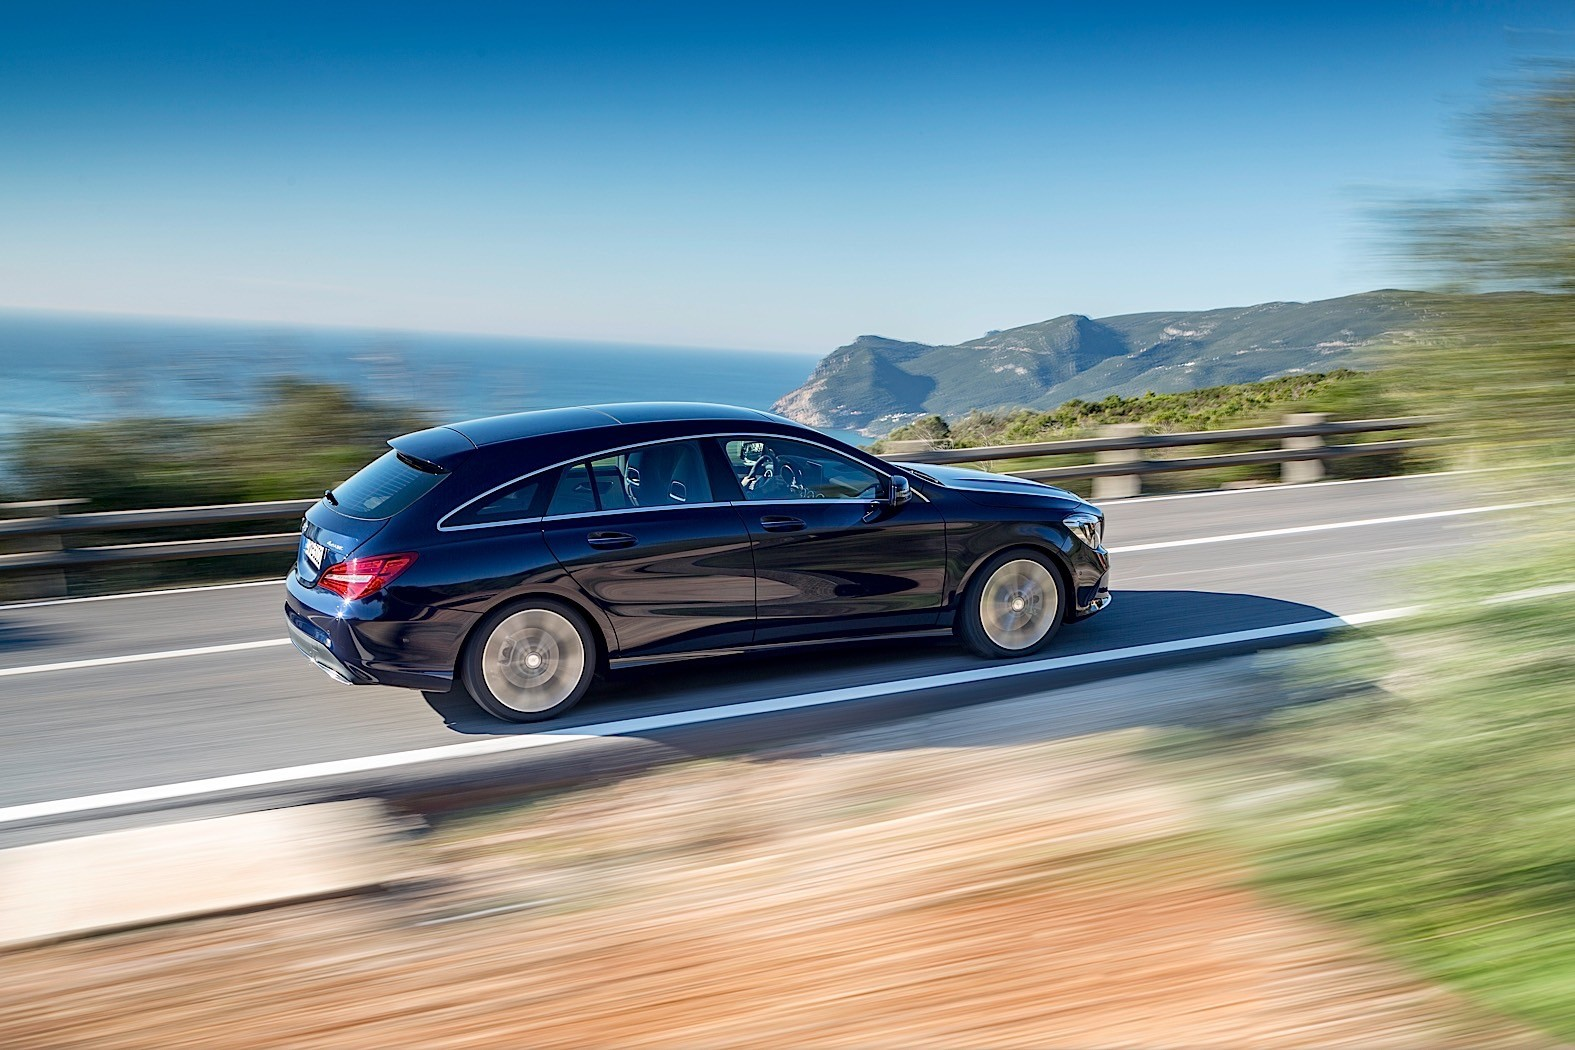 Mercedes Benz Has The Most Aerodynamic Car Range In The